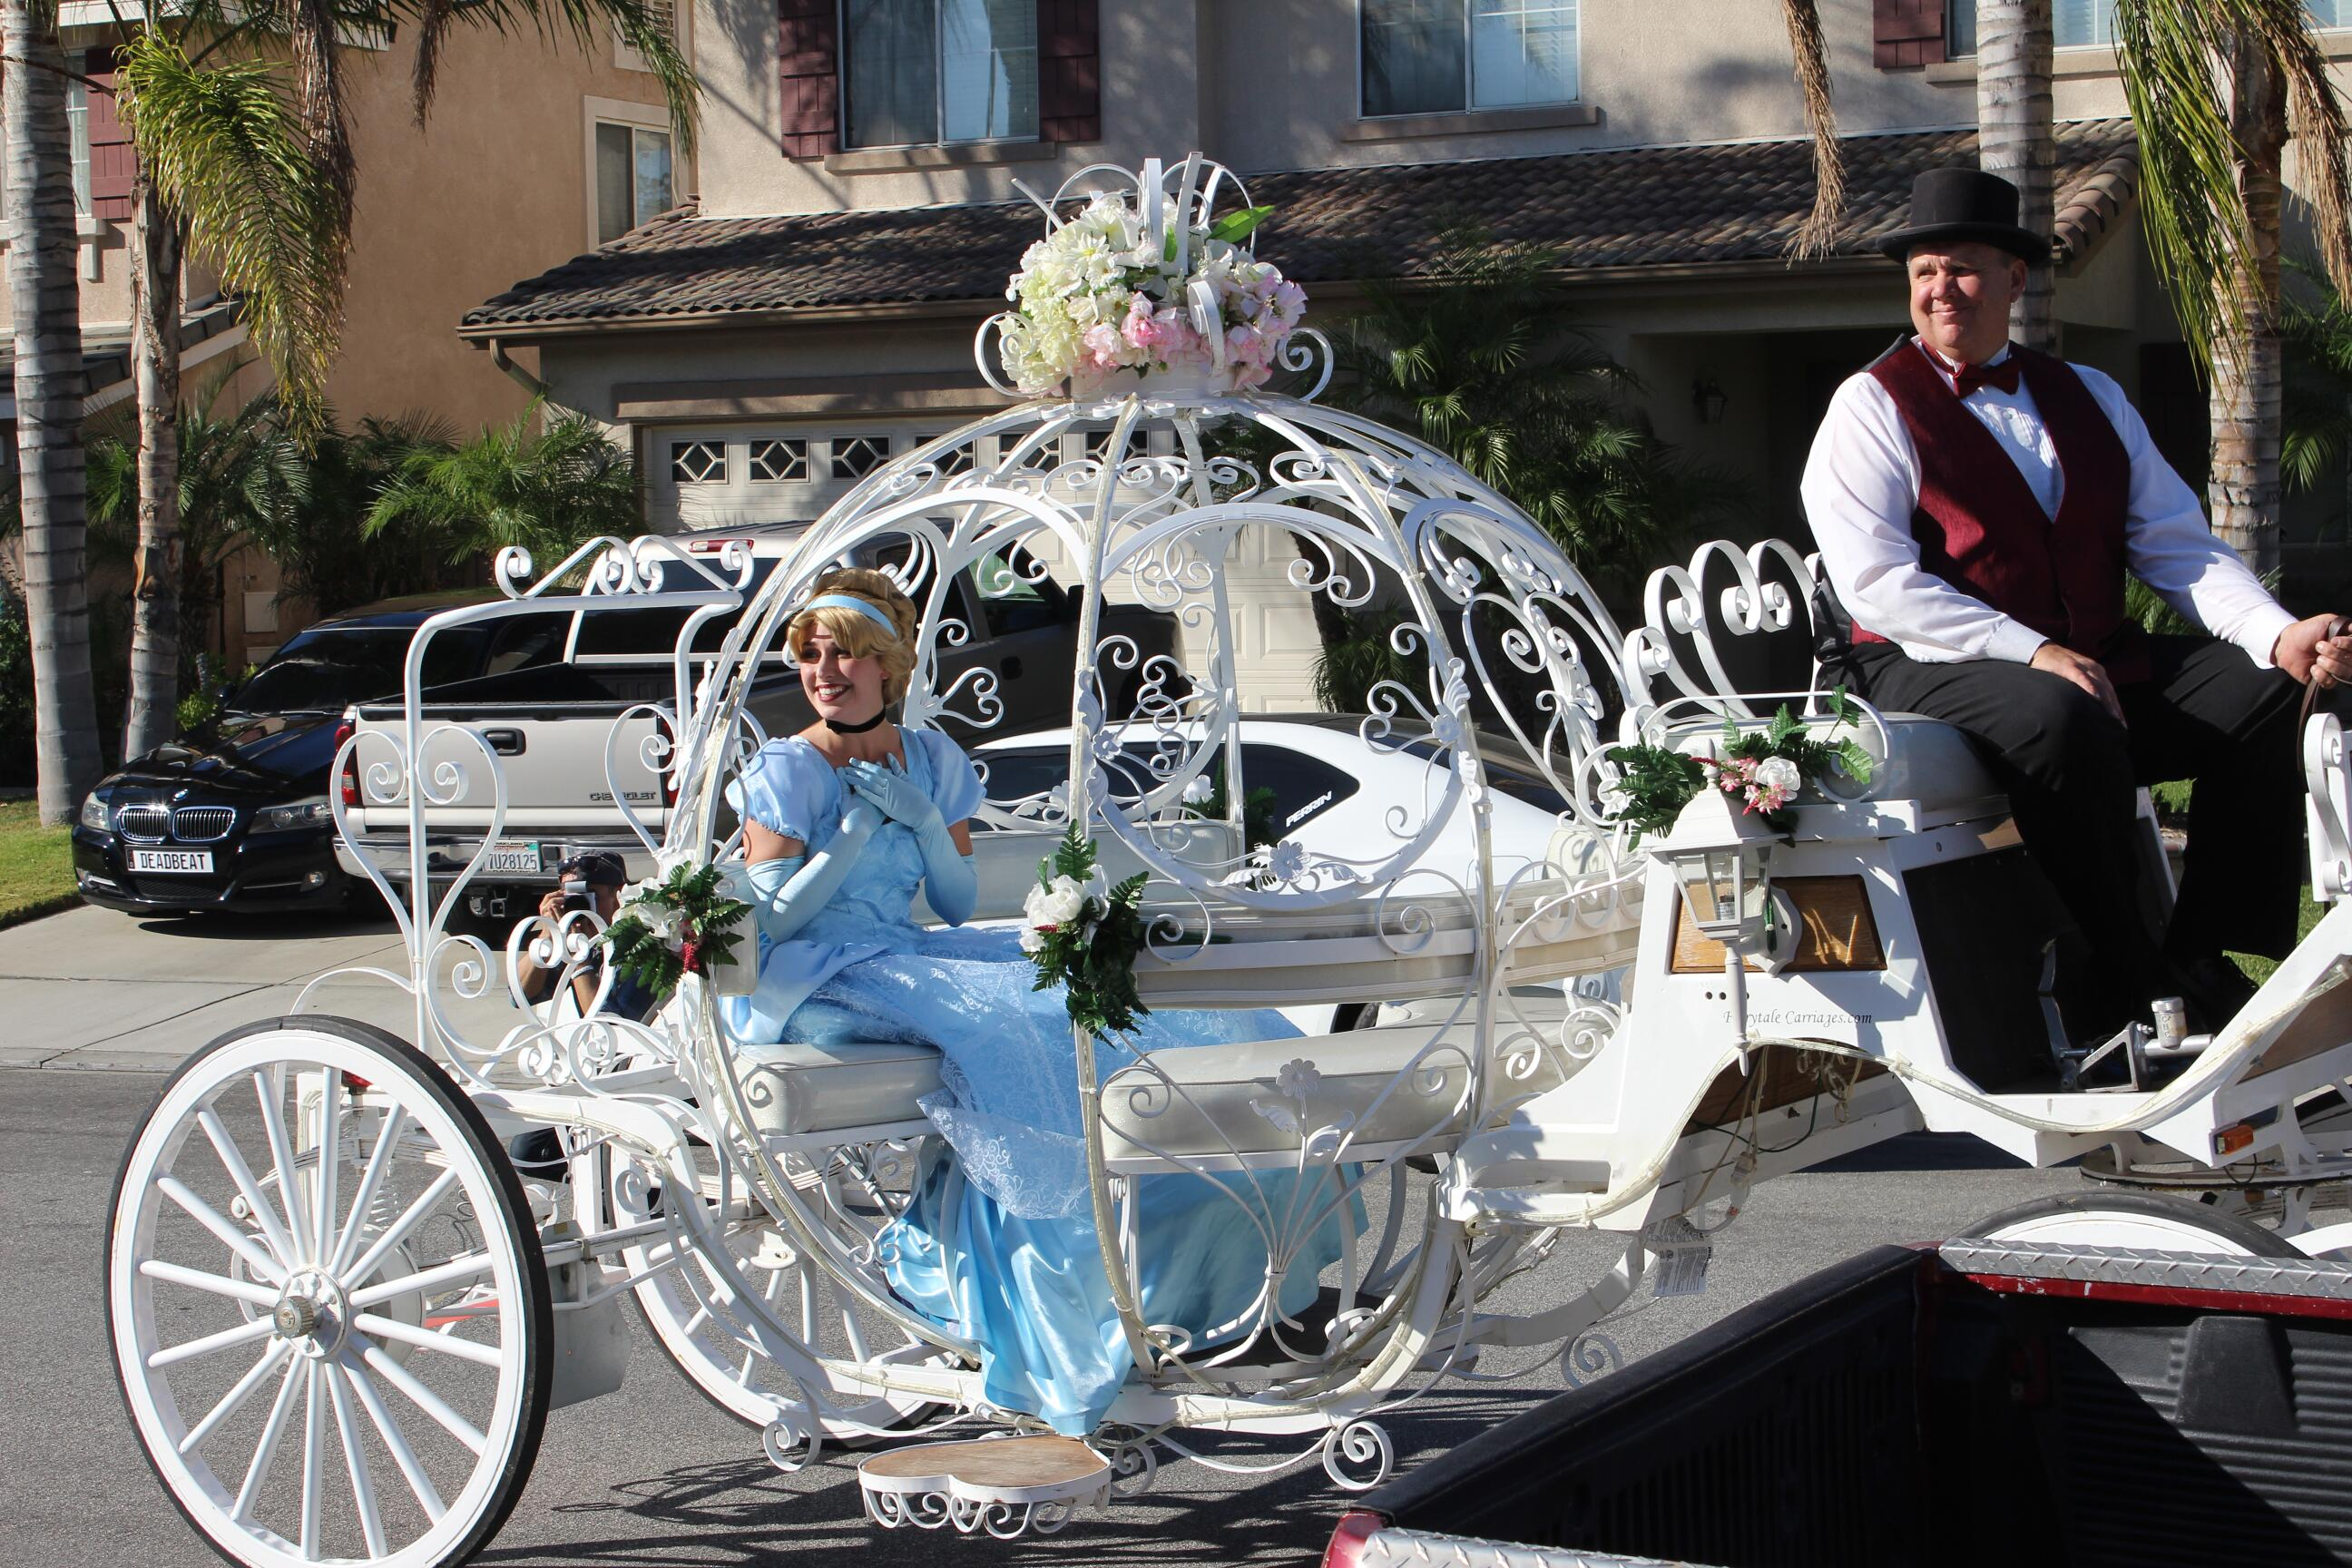 Cinderella Character in Carriage